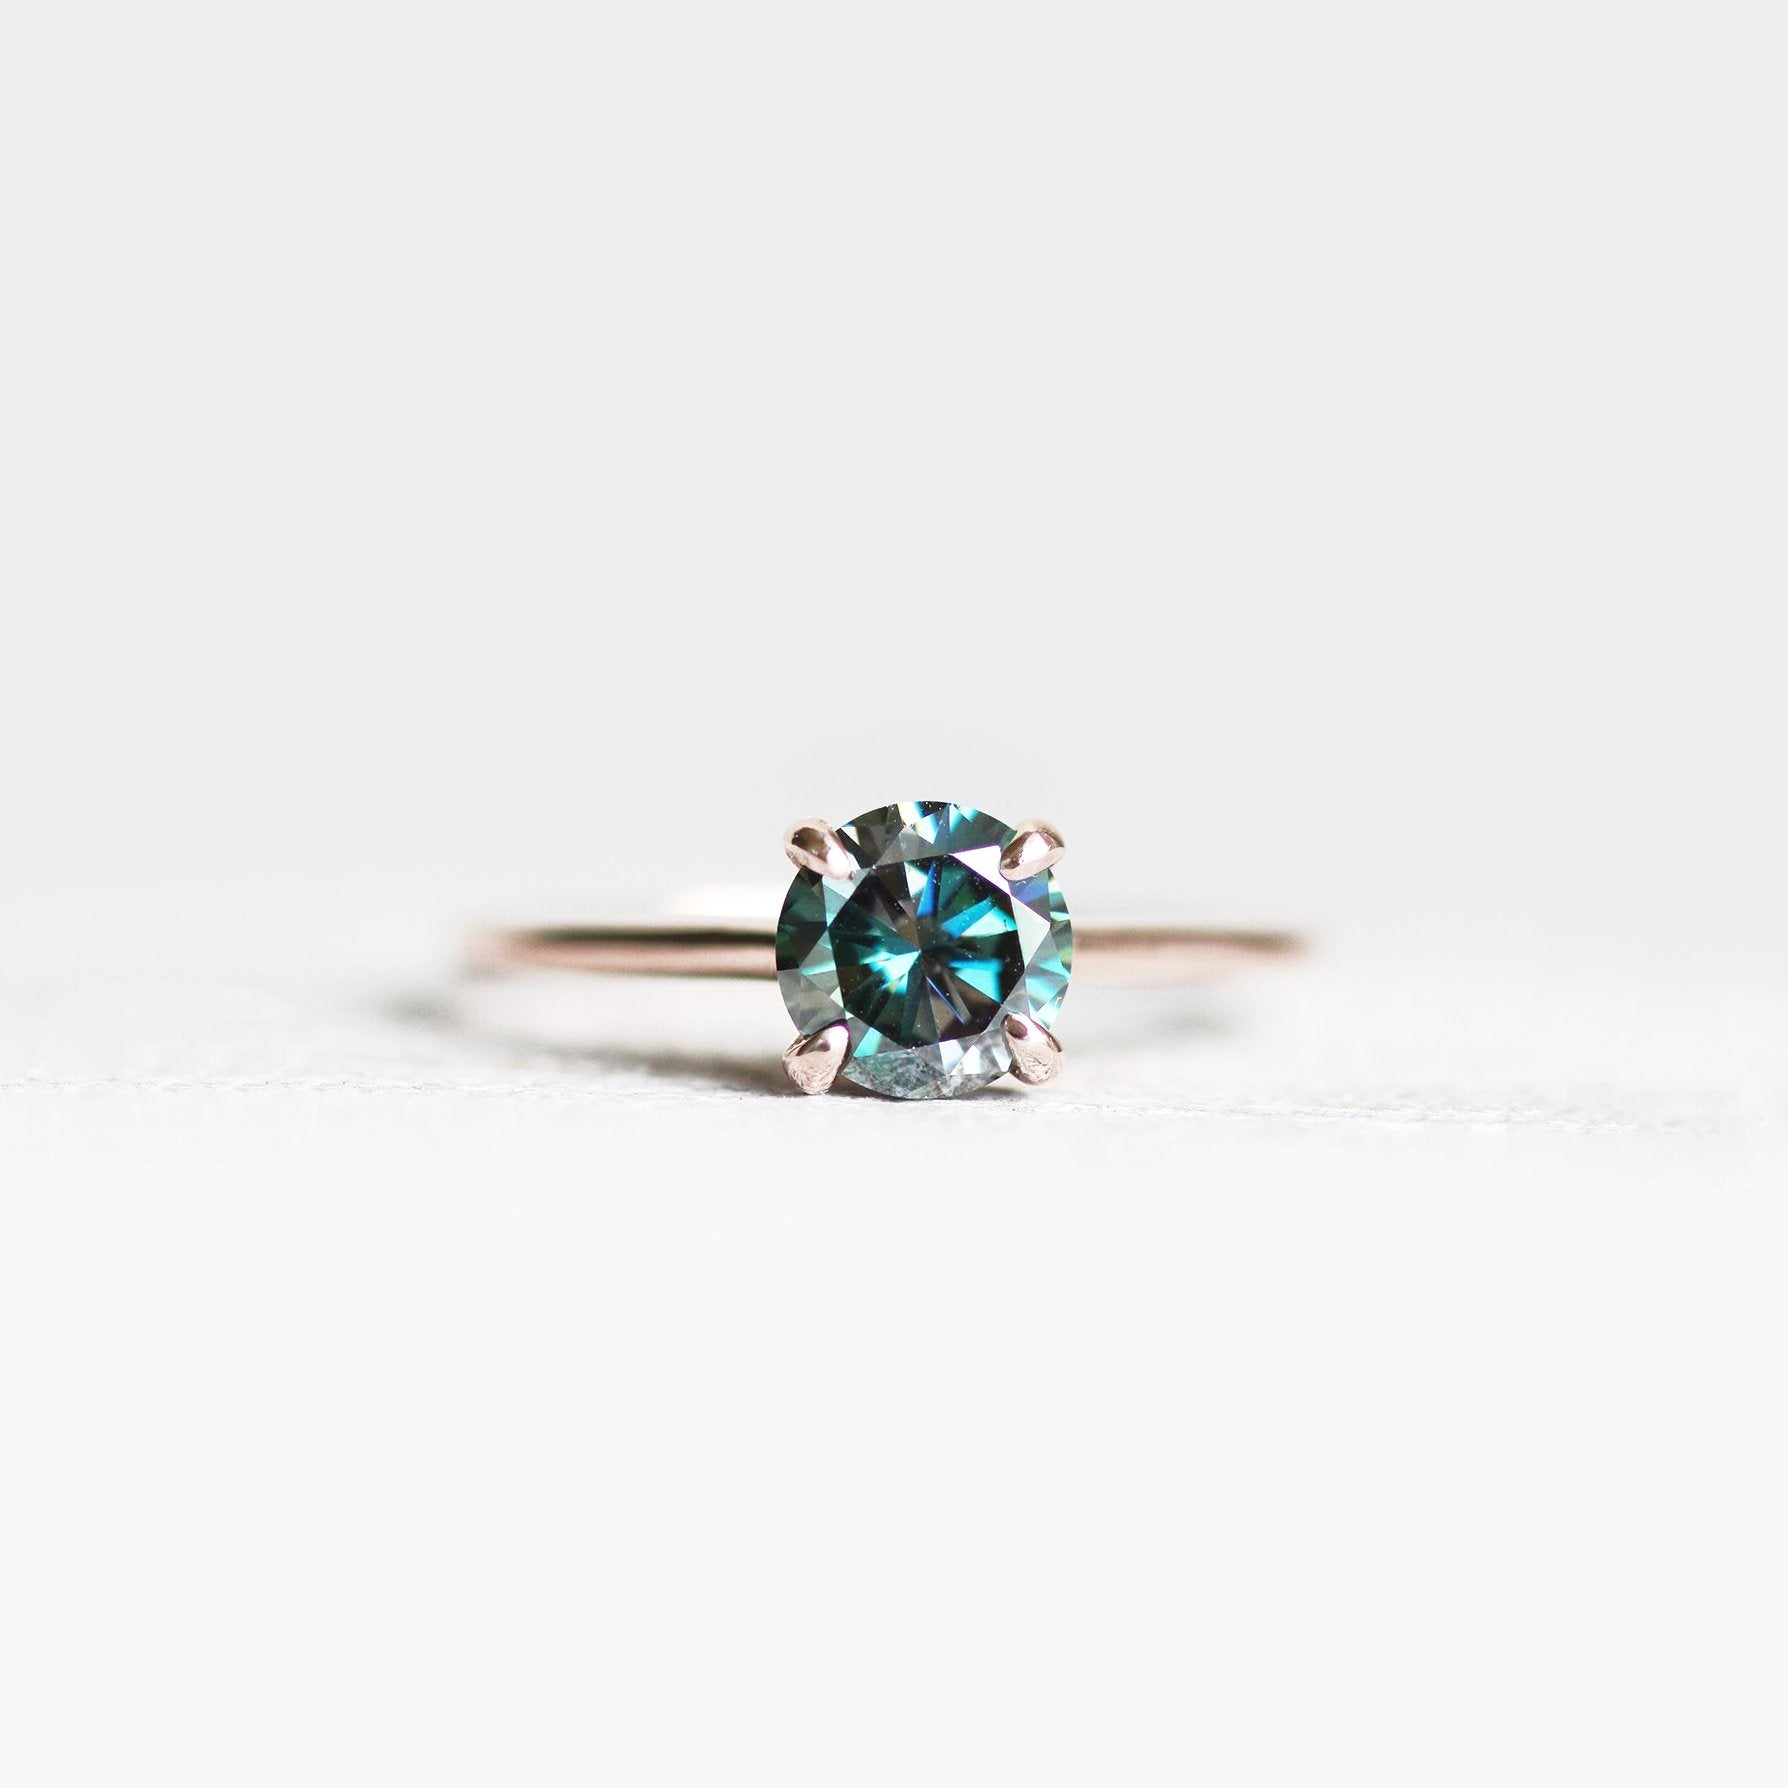 Dark Black Blue Moissanite Solitaire Ring in your choice of metal - Salt & Pepper Celestial Diamond Engagement Rings and Wedding Bands  by Midwinter Co.